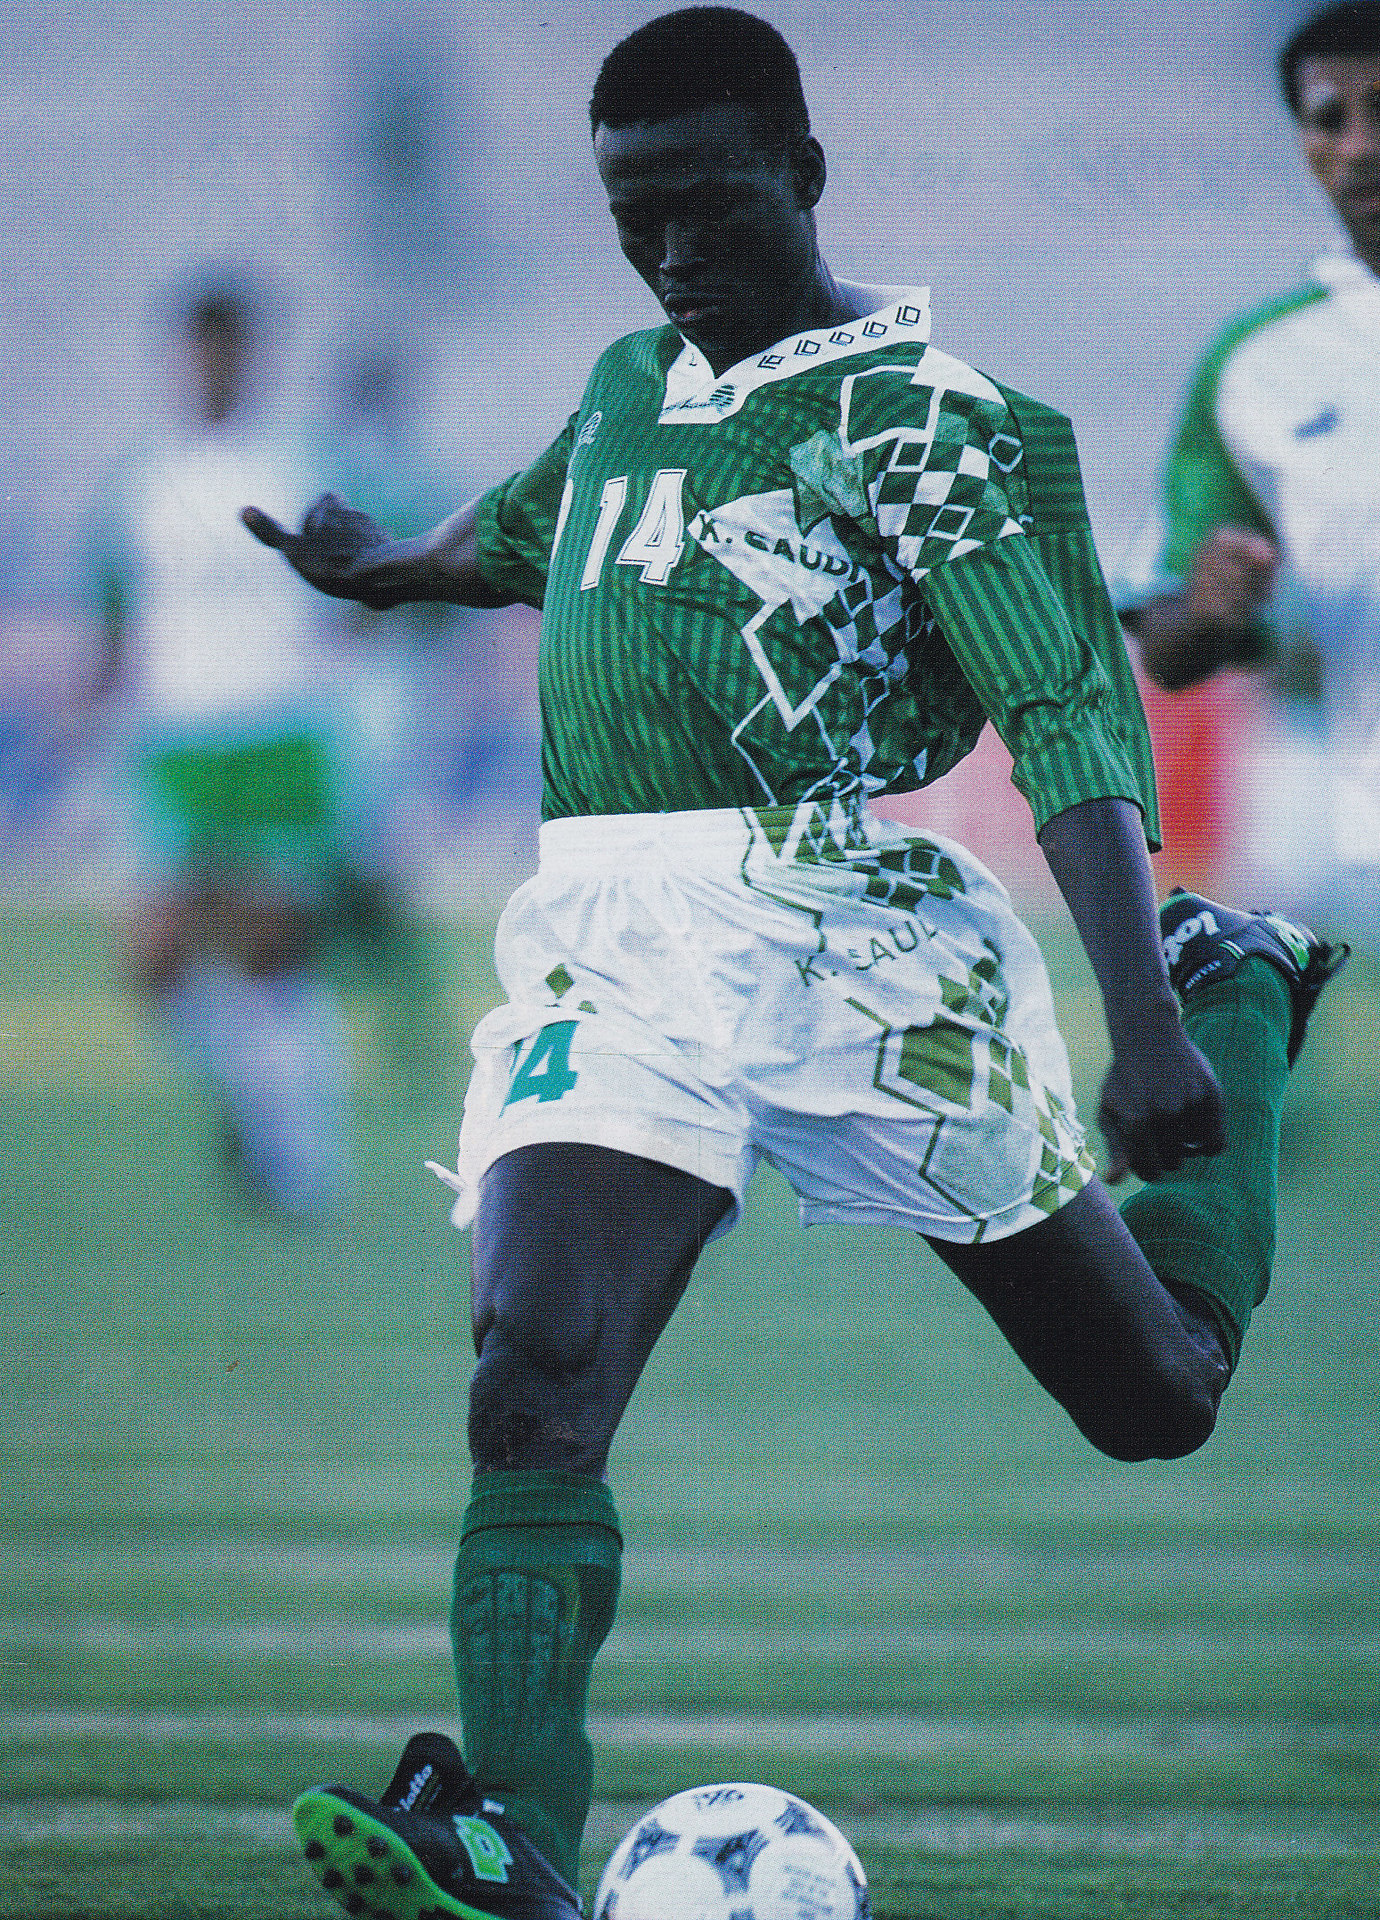 Saudi-Arabia-1996-Shamel-asian-cup-away-kit-green-white-green.jpg